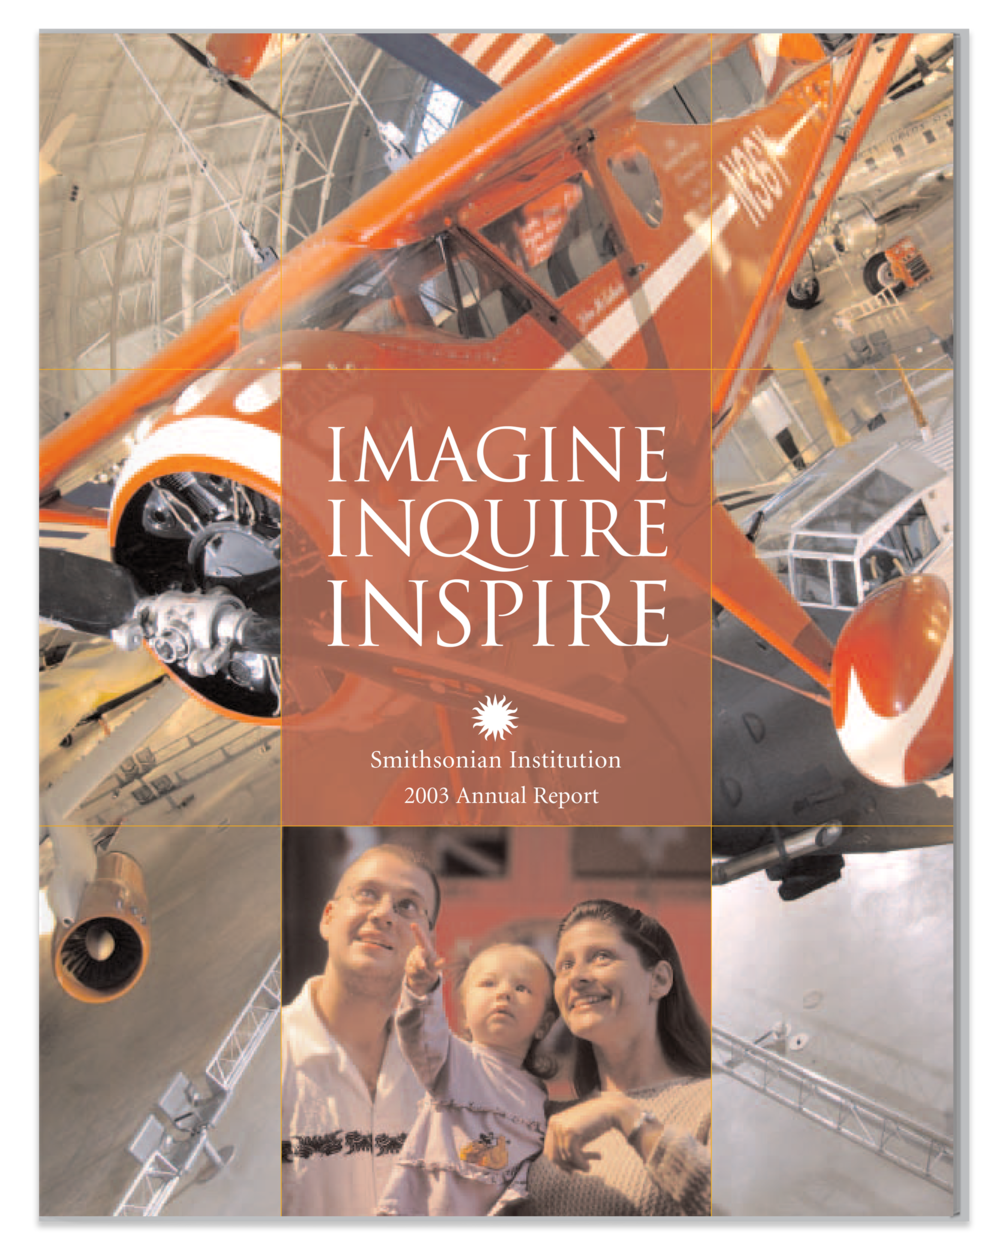 Smithsonian 2003 annual report